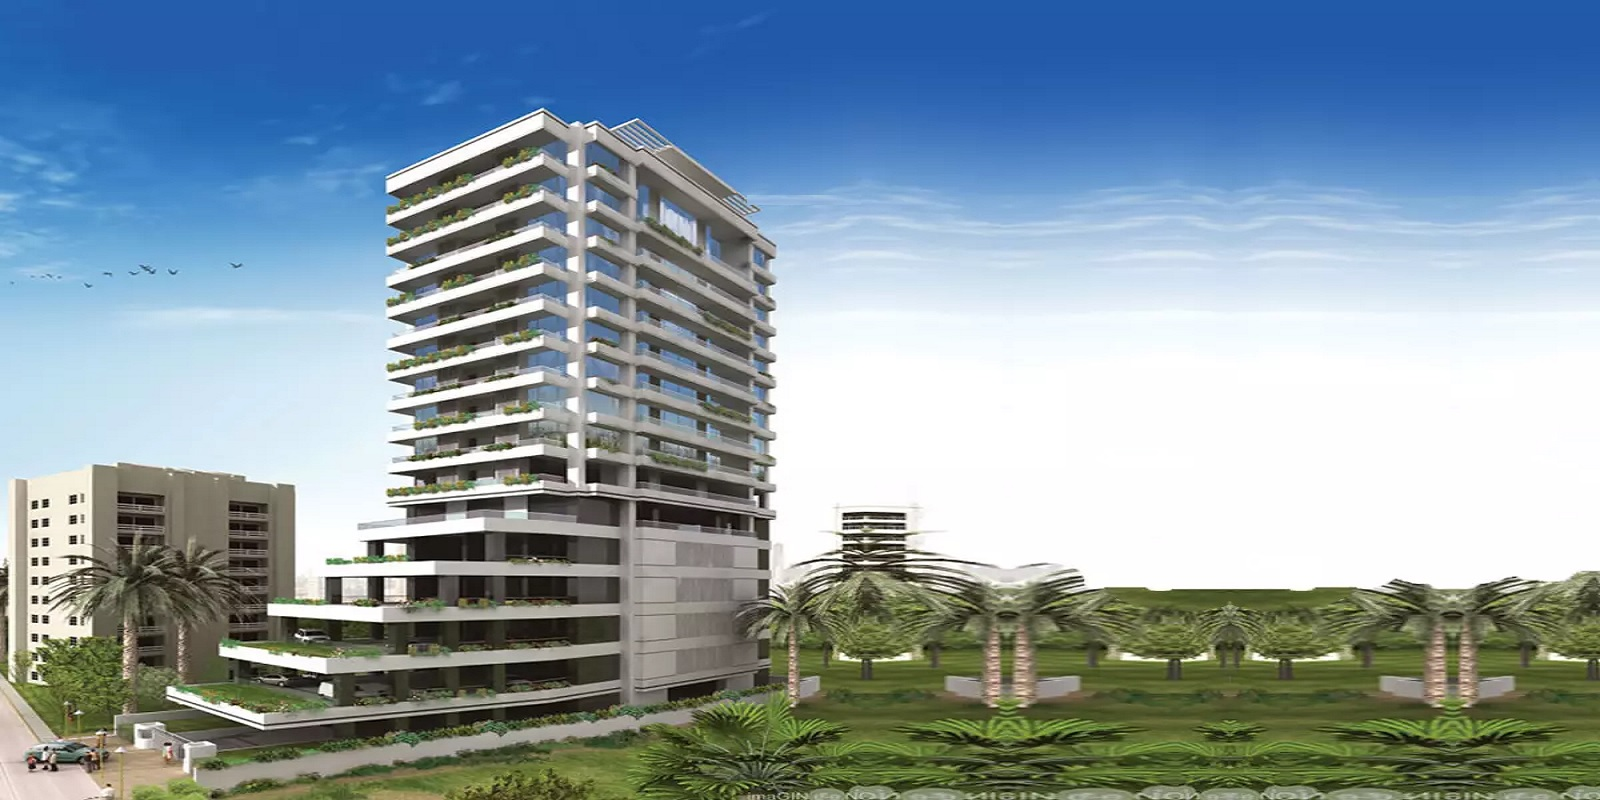 lodha costiera project large image1